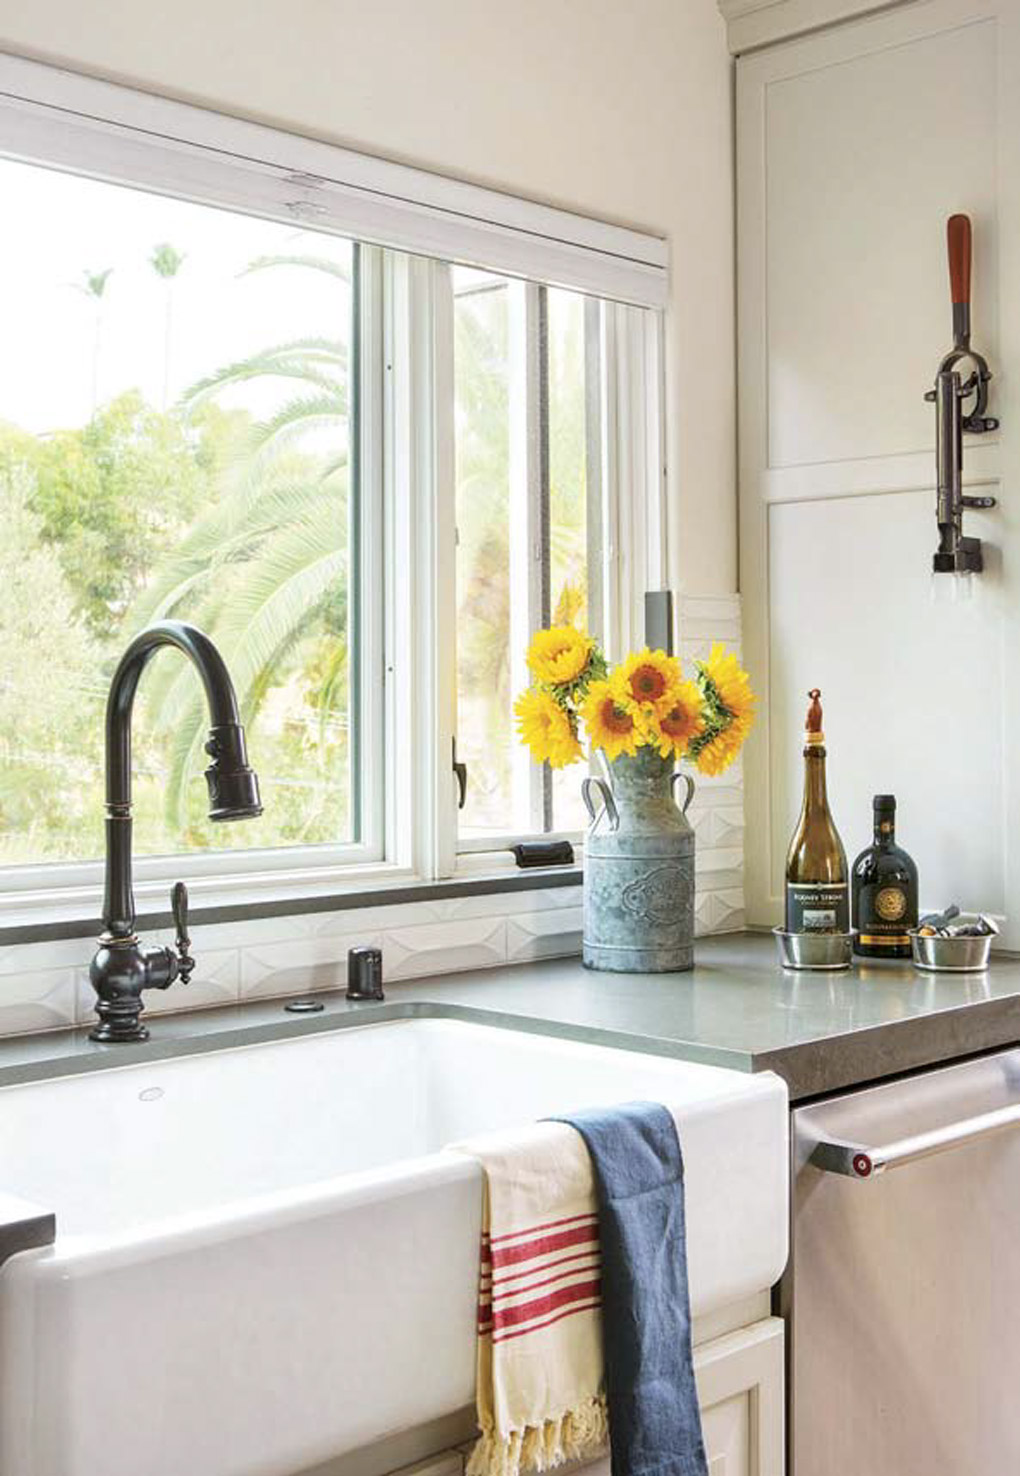 kitchen remodel with beautiful white farmhouse kitchen sink overlooking a large wide window with a view.